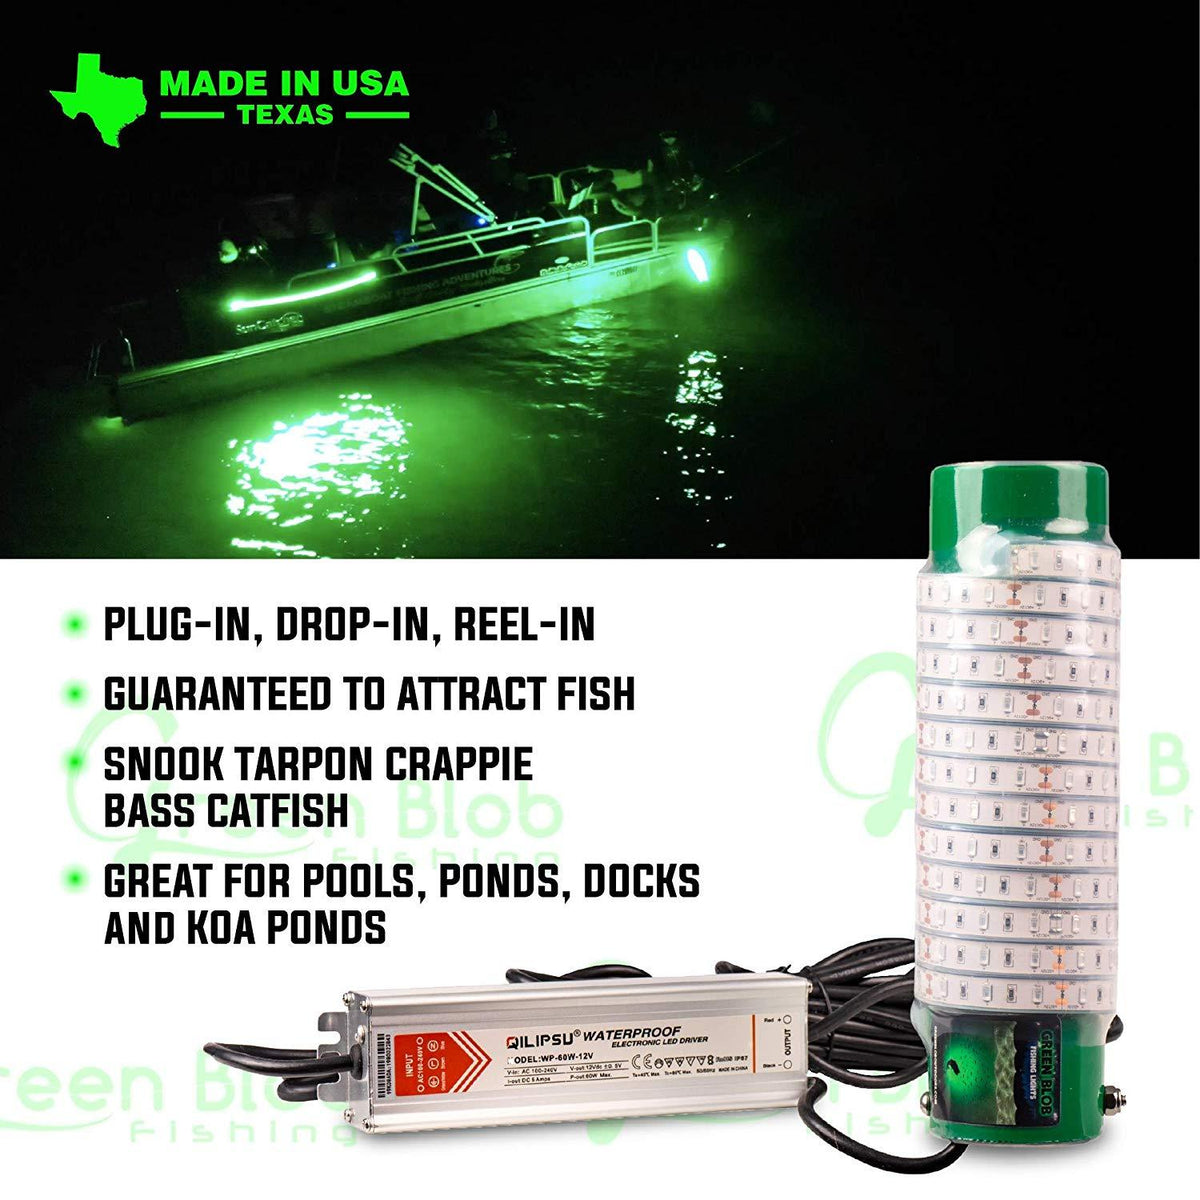 Green Blob Underwater Fishing Light for Docks 7500 Lumen, 110 VAC with 30ft Cord Fishing Lights Green Blob Outdoors